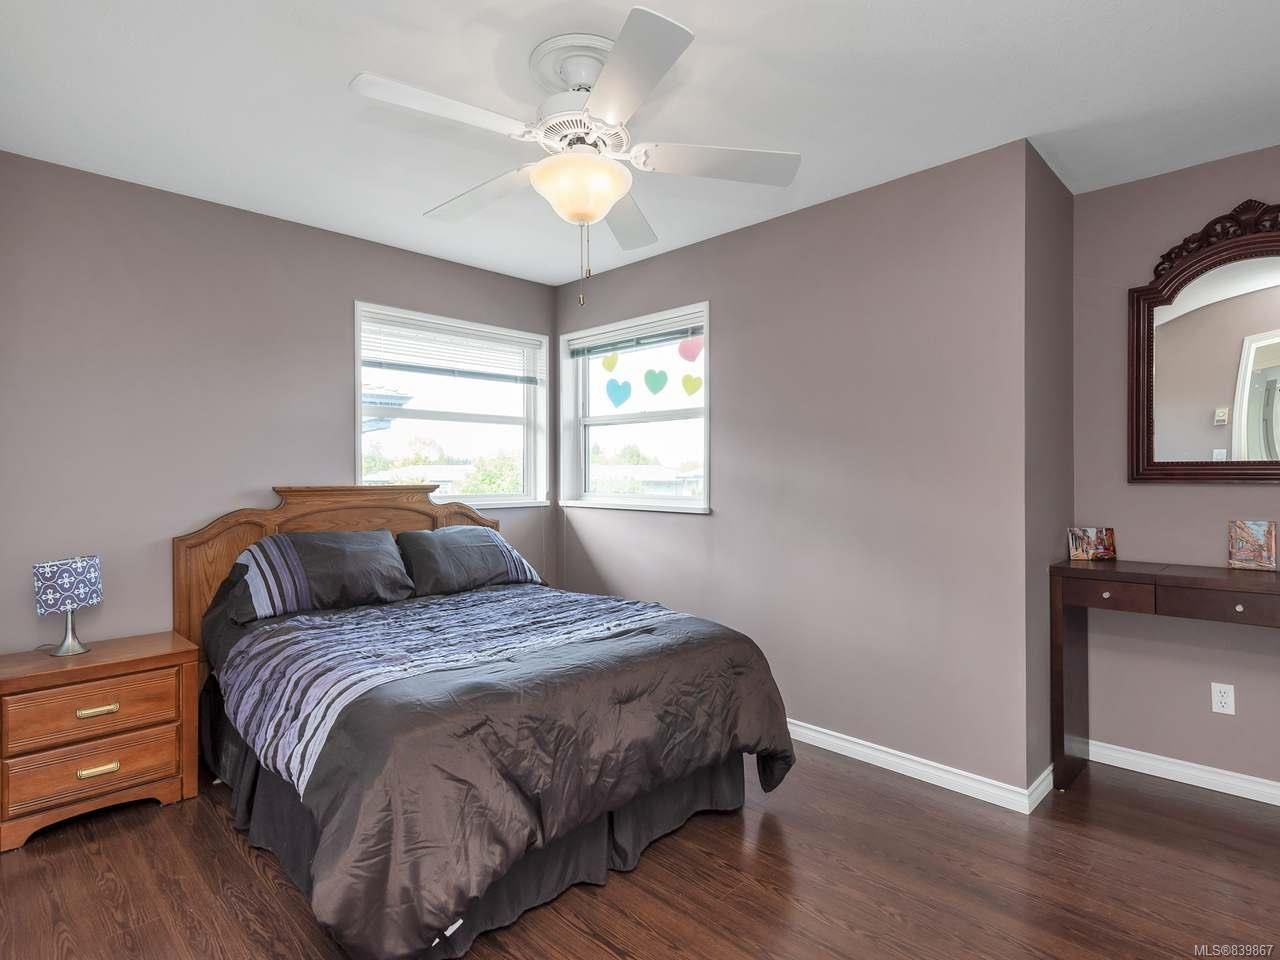 Photo 17: Photos: 21 2750 Denman St in CAMPBELL RIVER: CR Willow Point Row/Townhouse for sale (Campbell River)  : MLS®# 839867